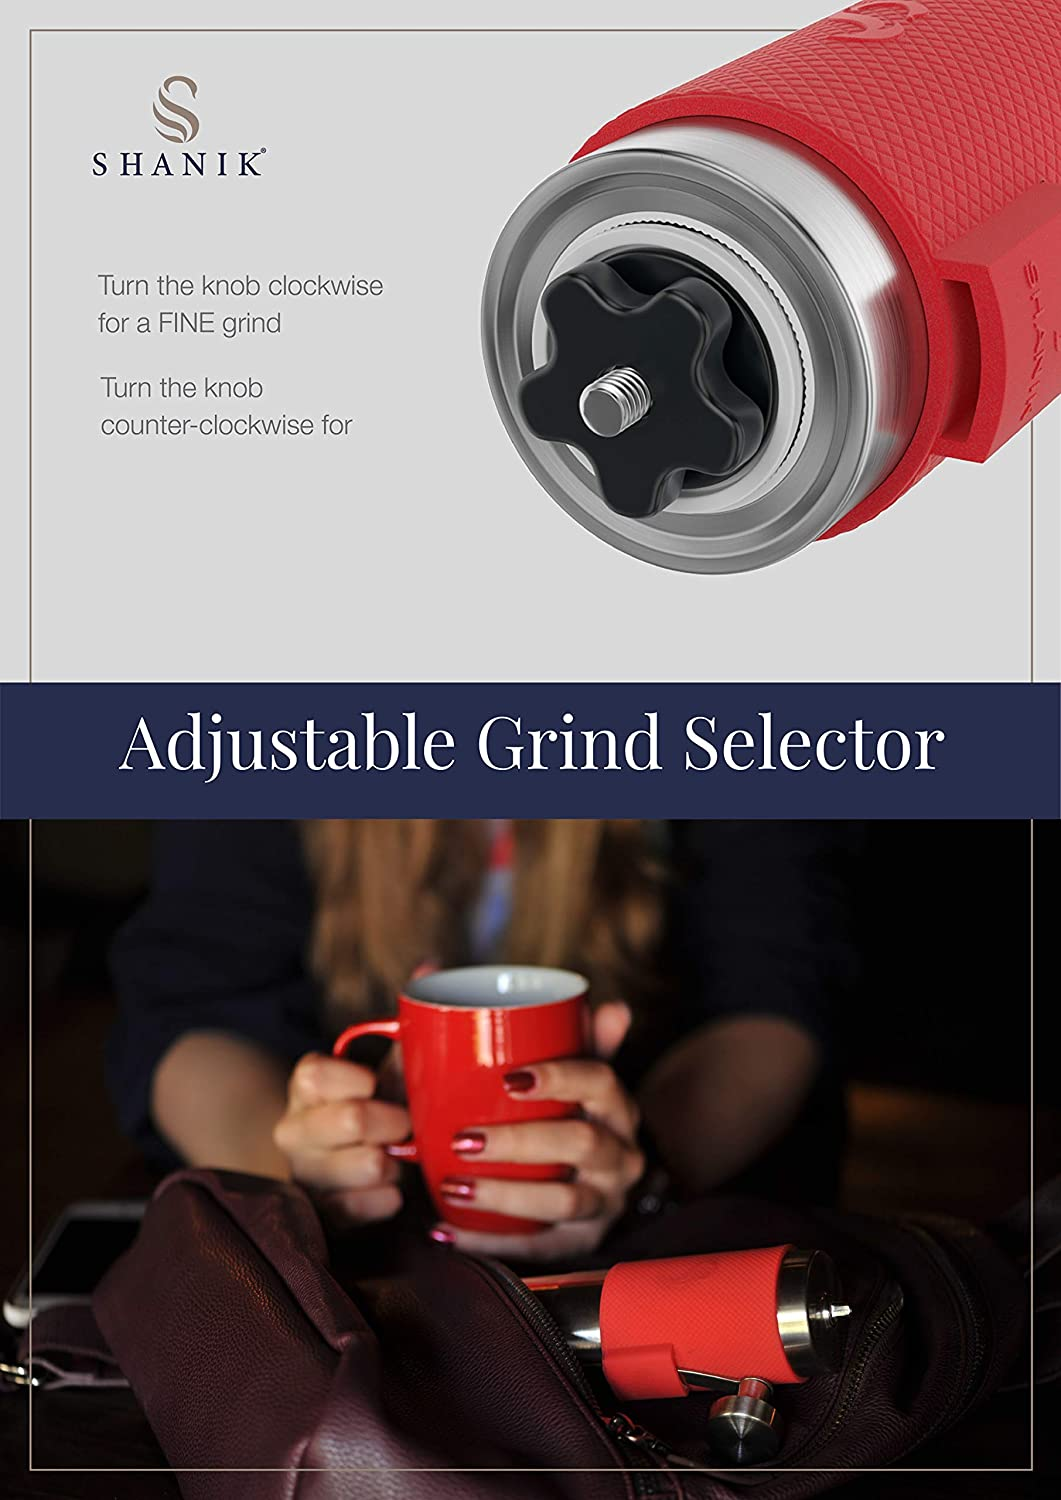 Portable Burr Coffee Grinder Silicone Lid to Keep Coffee in Container Conical Ceramic Burr for Precision Brewing Premium Quality Stainless Steel Manual Coffee Grinder